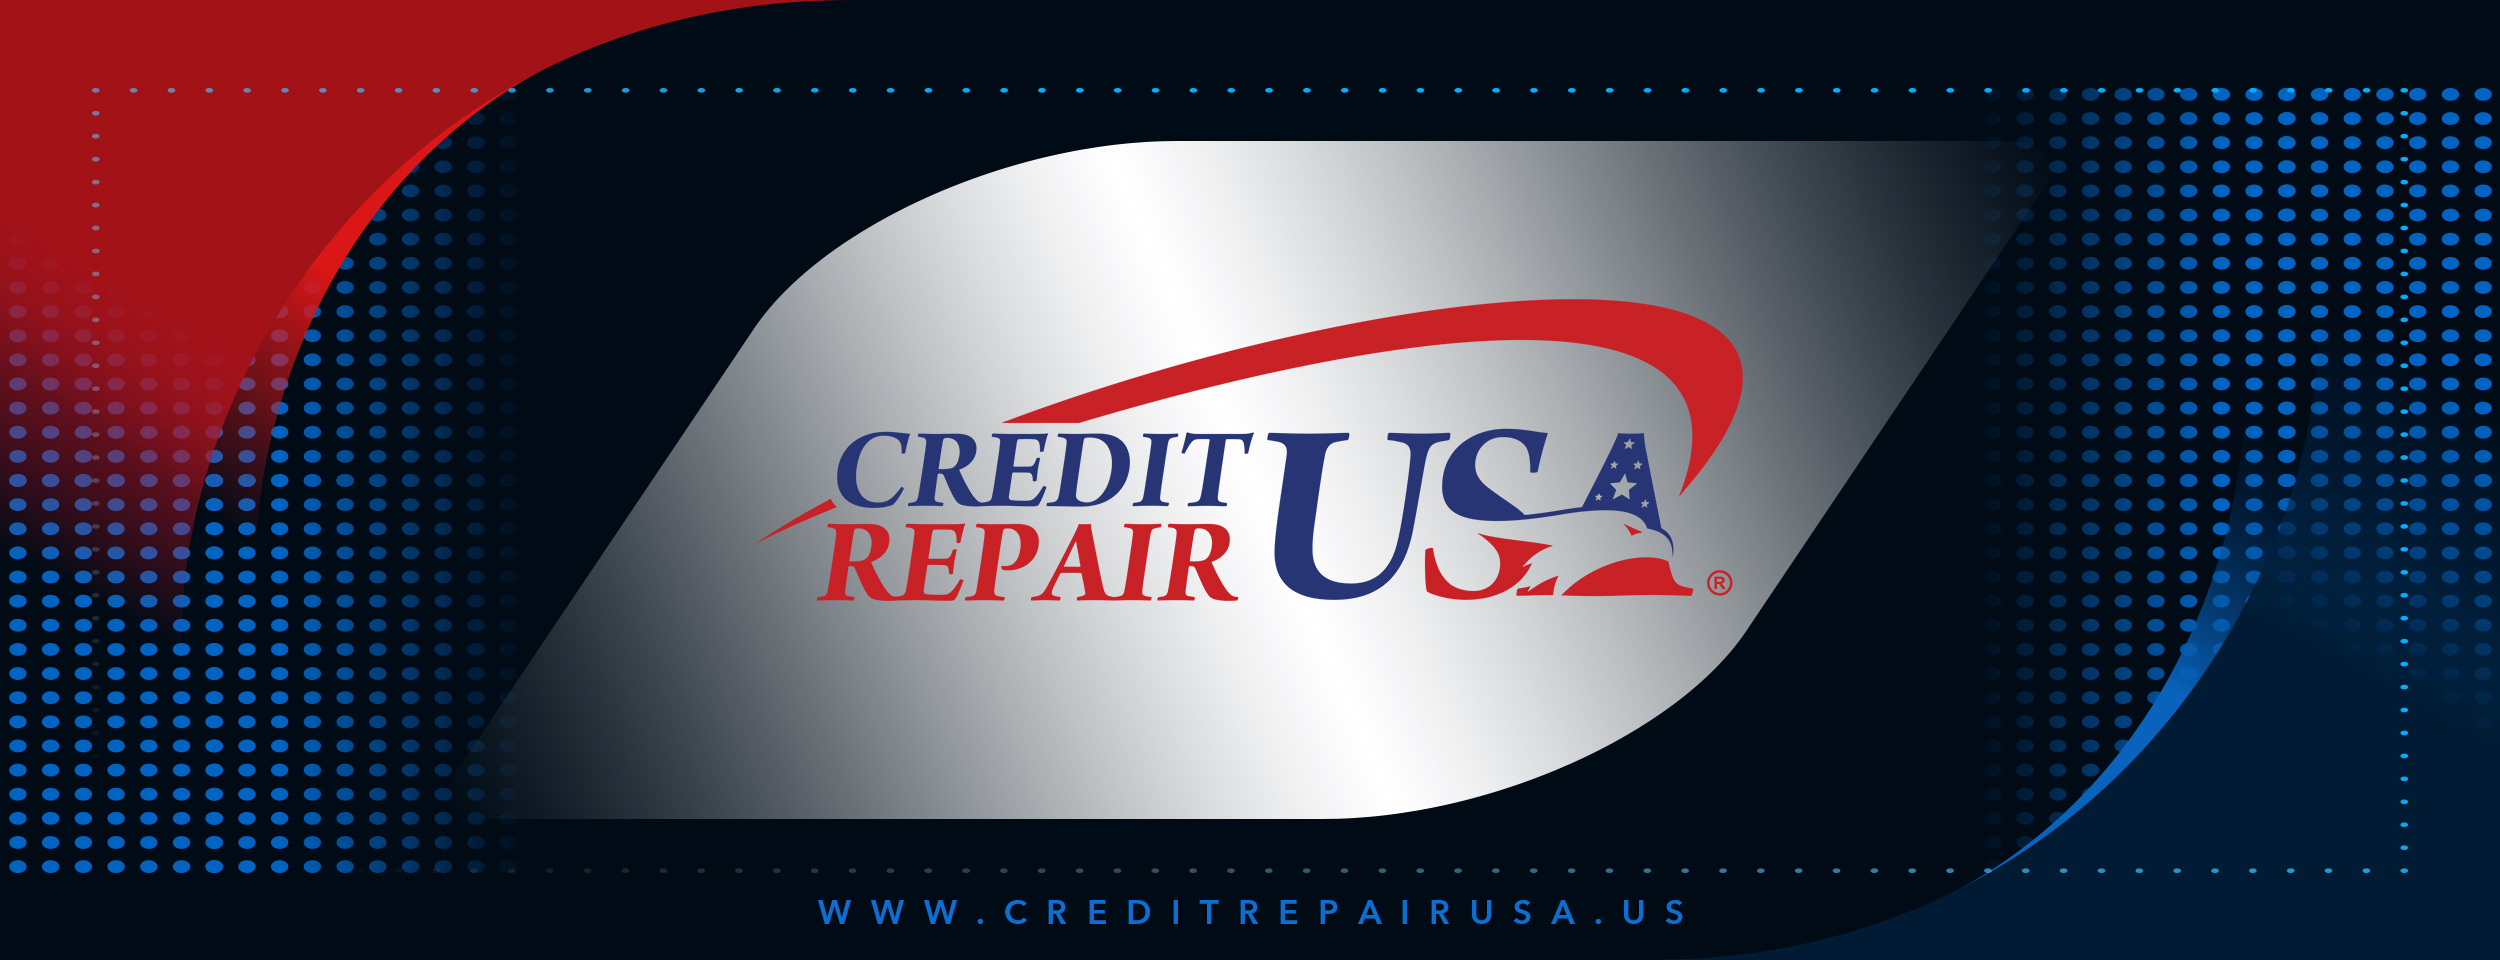 Credit Repair USA Opportunity